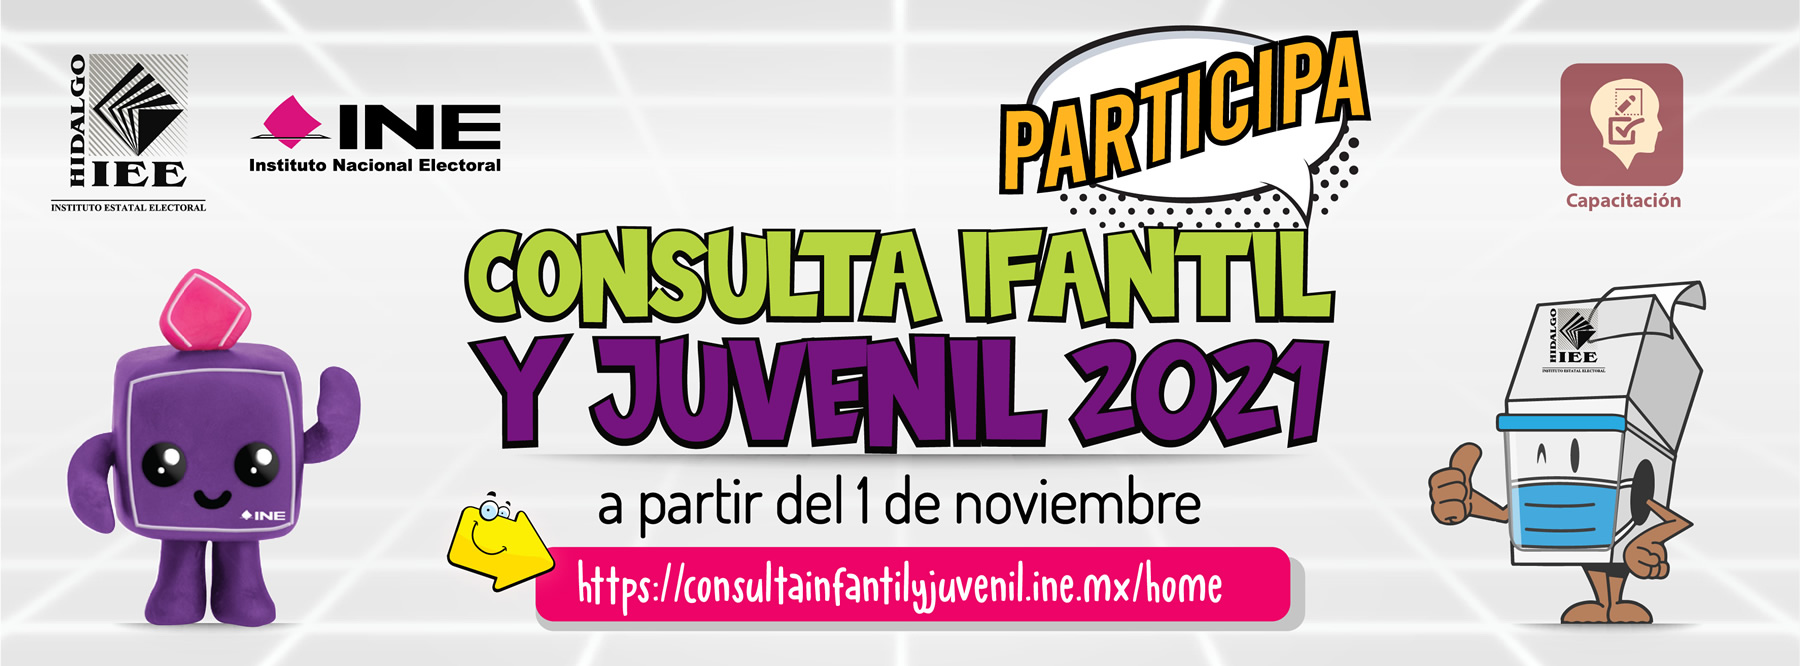 BANNERCONSULTAINF